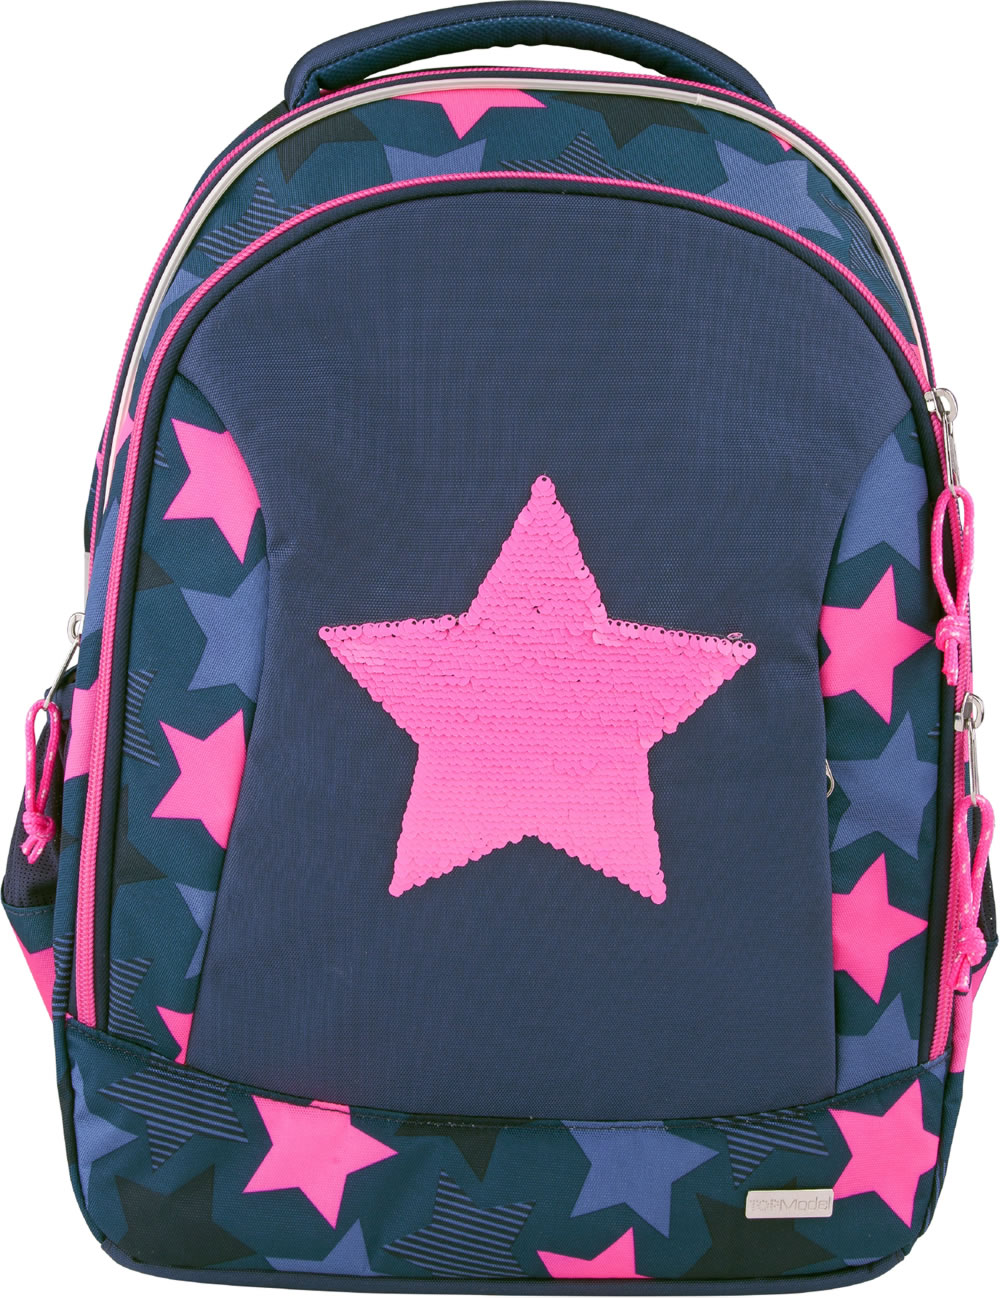 10415 Best Images About Psychic Life Journey On Pinterest: TOPModel Schul-Rucksack Streich-Pailletten Stars Blau Bei